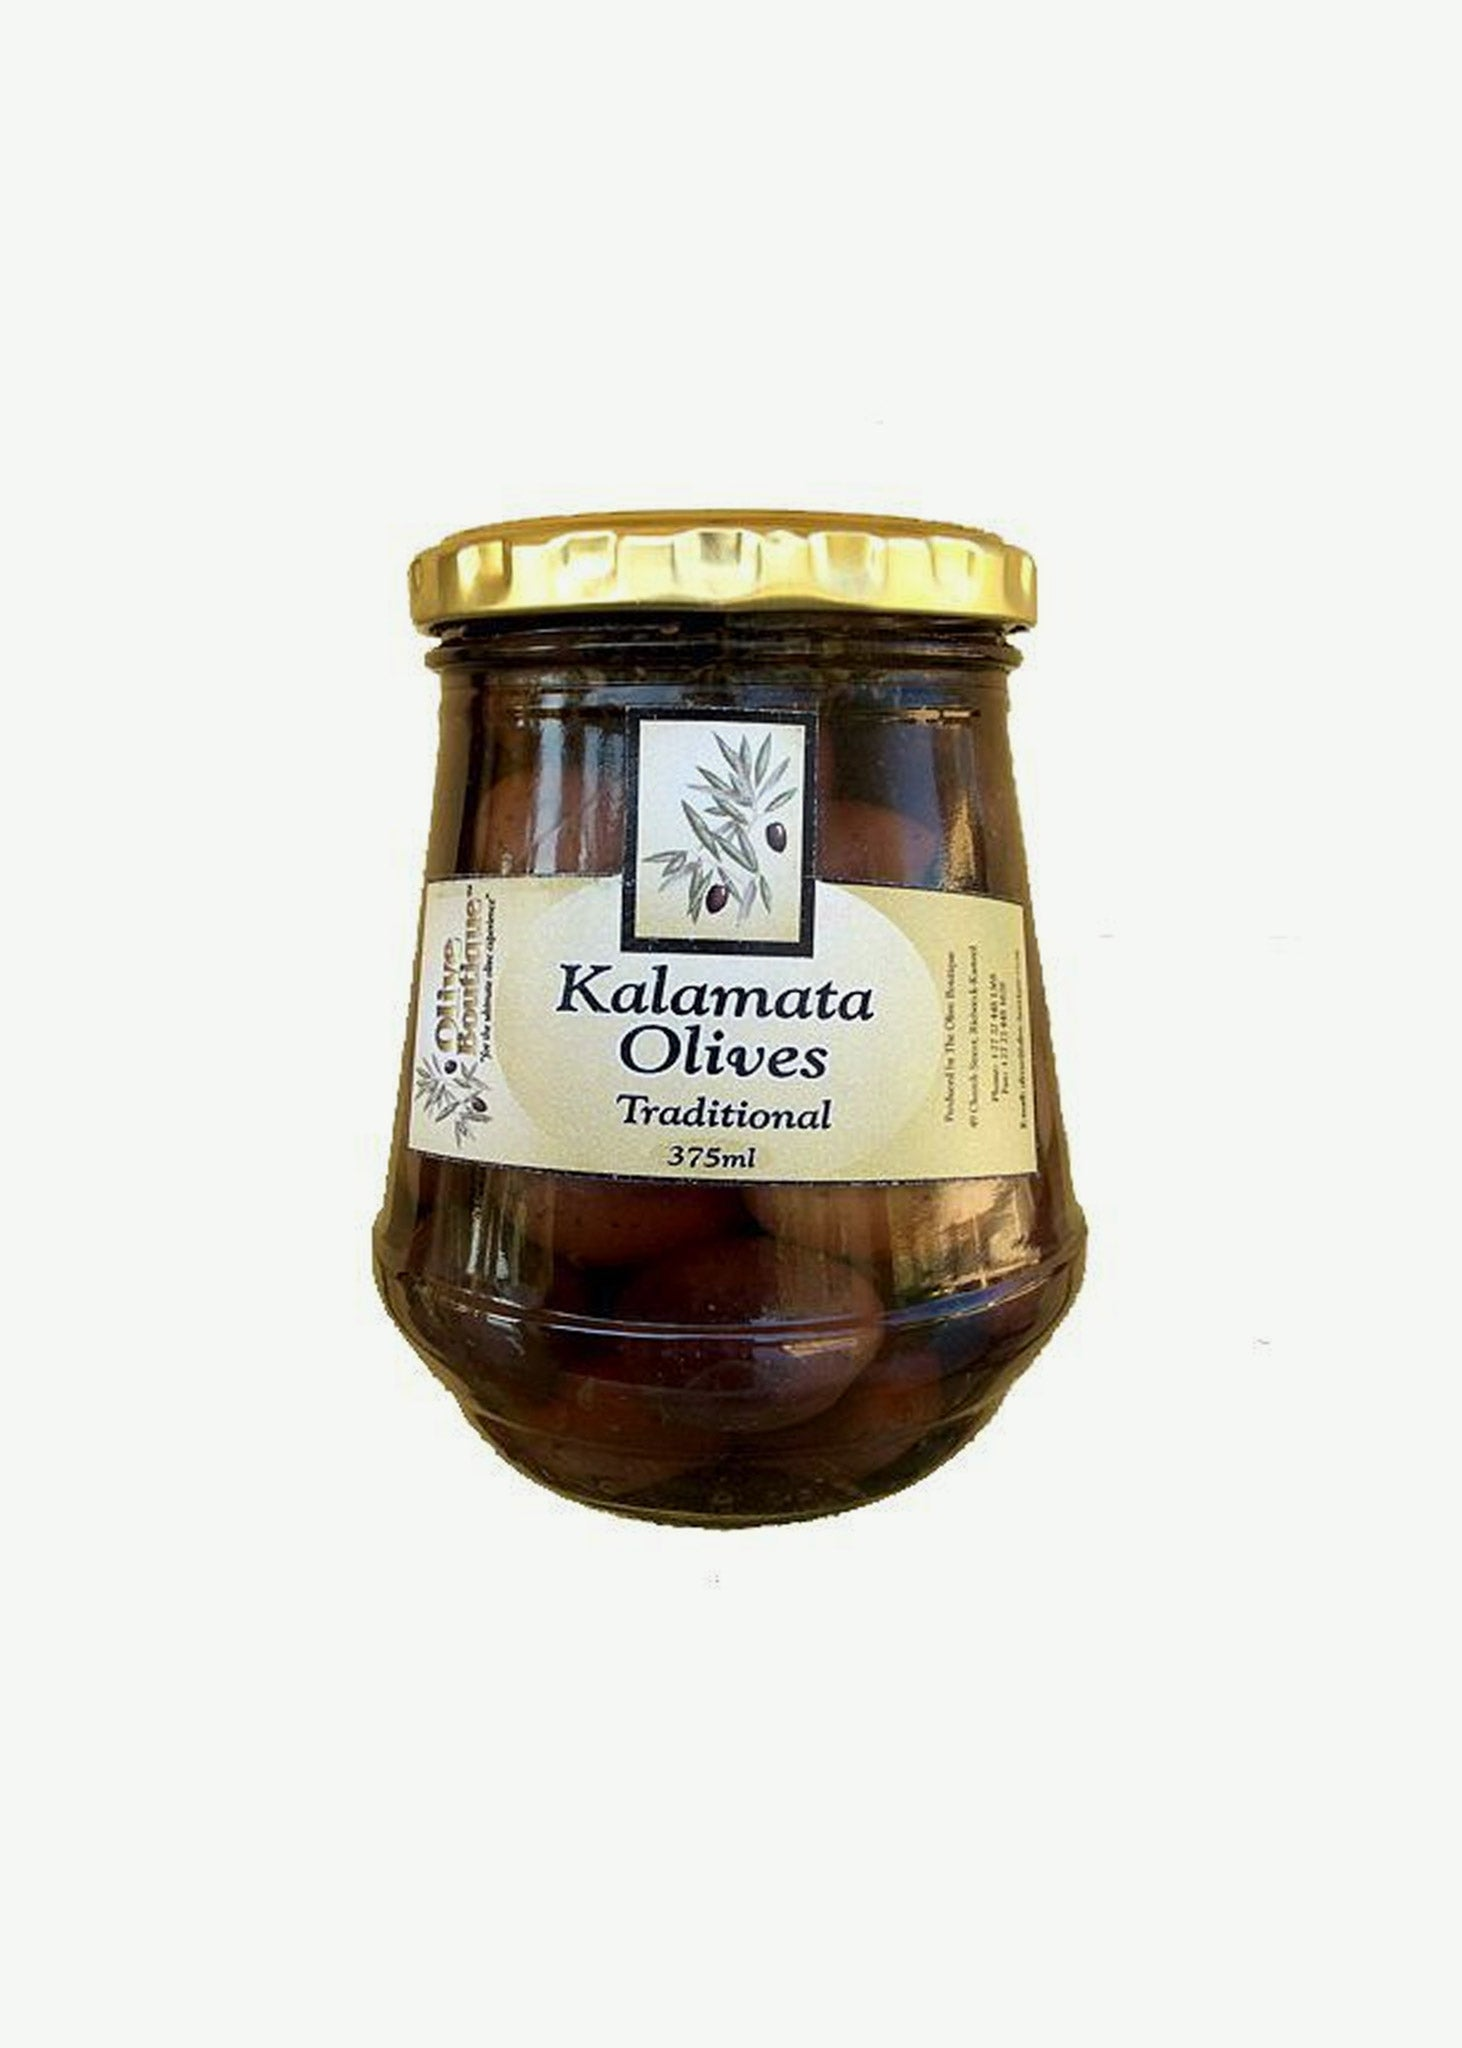 Kalamata Olives in the Traditional Style 375ml